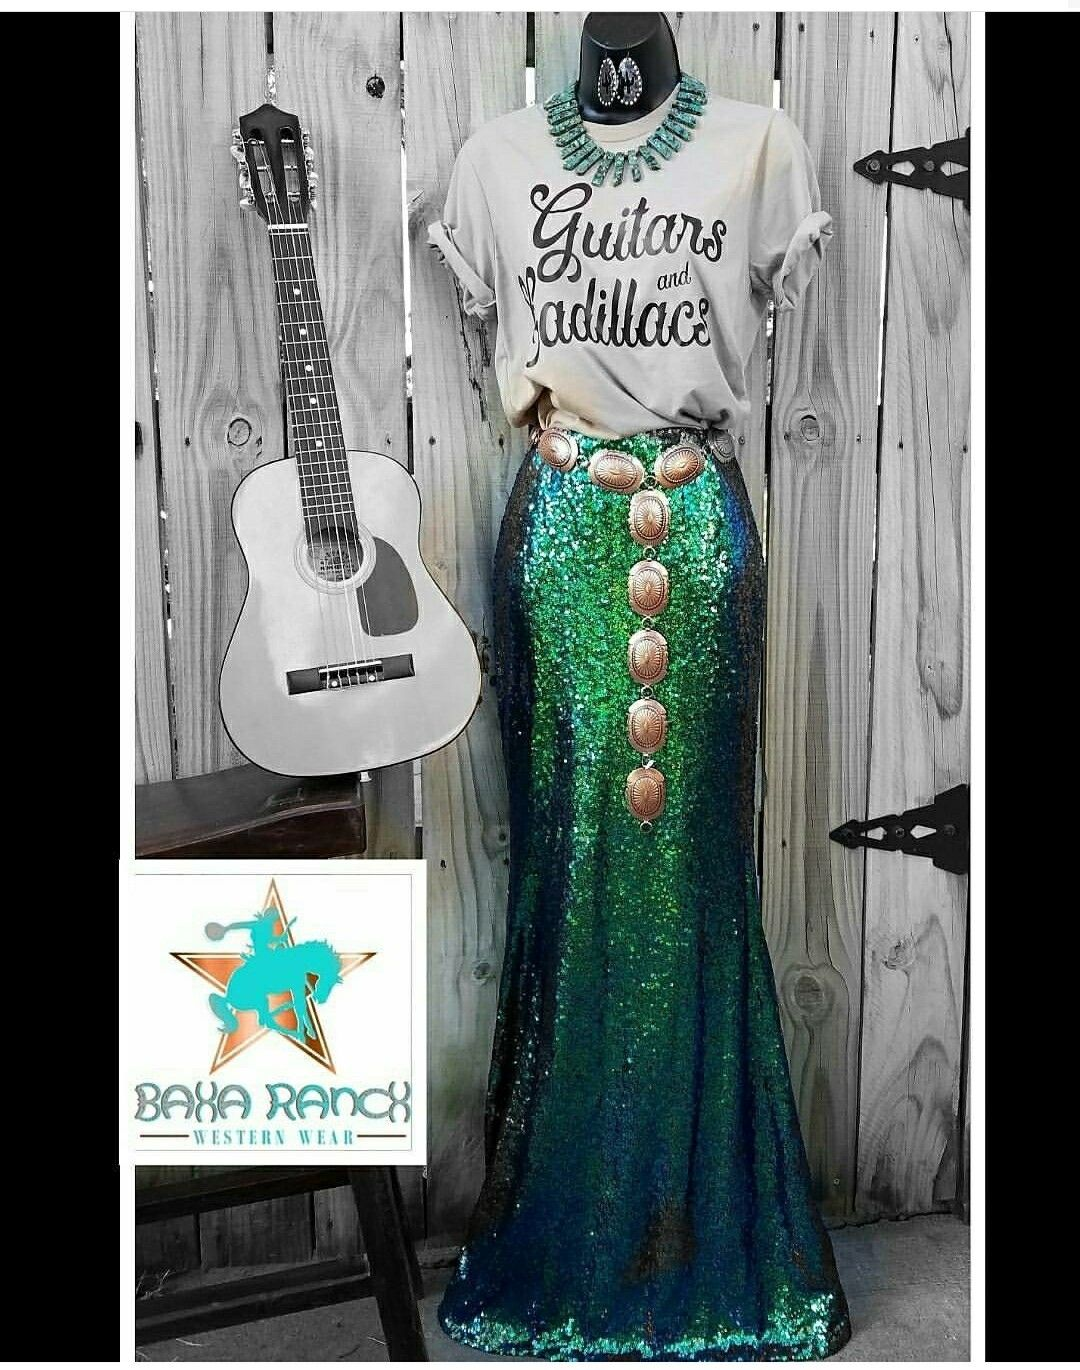 ce0bfb9a34 ... holiday green blue vegas Maxi Western NFR #NFRFASHION Cowgirl gypsy skirt  Sequin mermaid holiday green blue vegas Maxi Western WWW. BAHARANCHWESTERNWEAR.